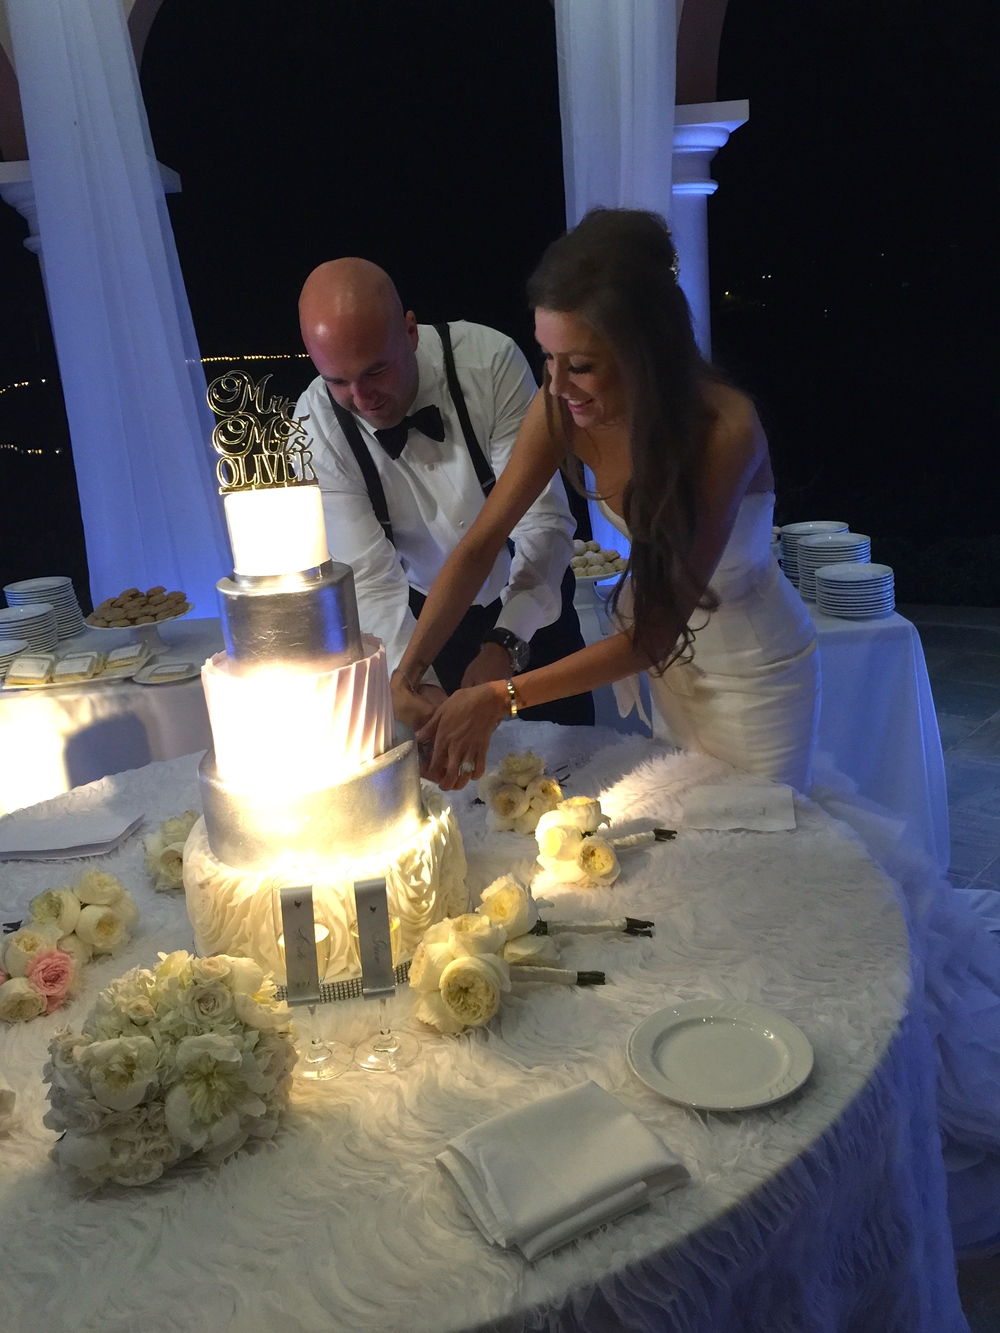 The cutting of the cake, made by Peridot Sweets.